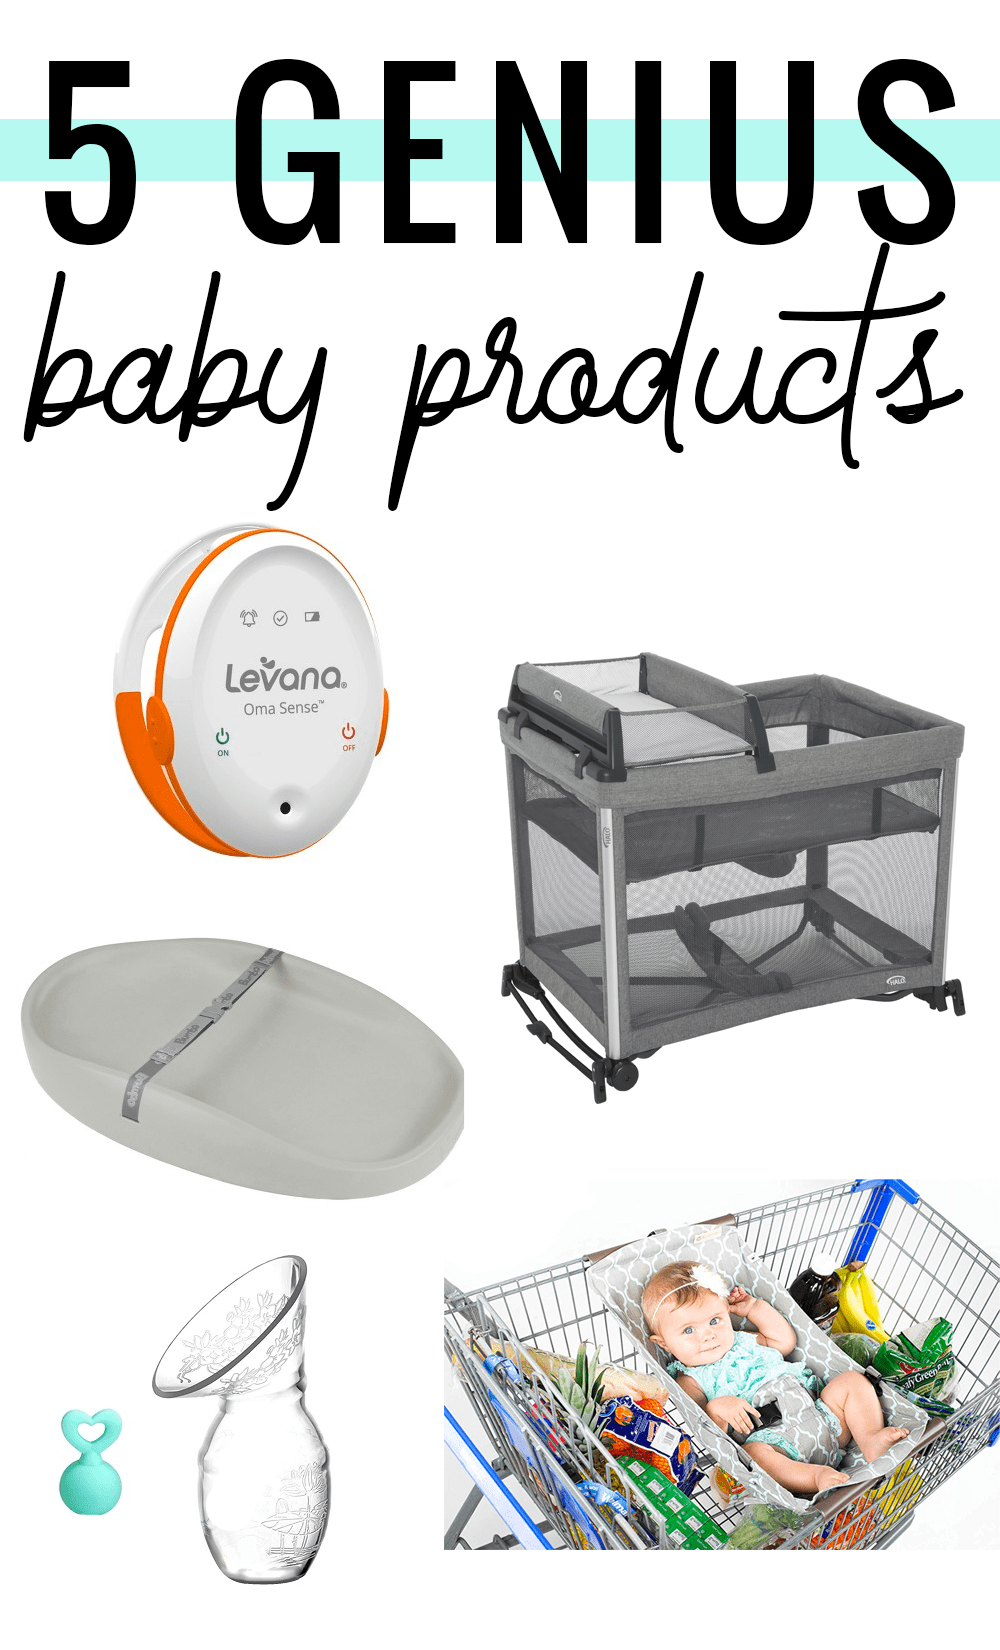 Houston mommy blogger Meg O. shares 5 genius baby products all new and expecting moms are bound to love!